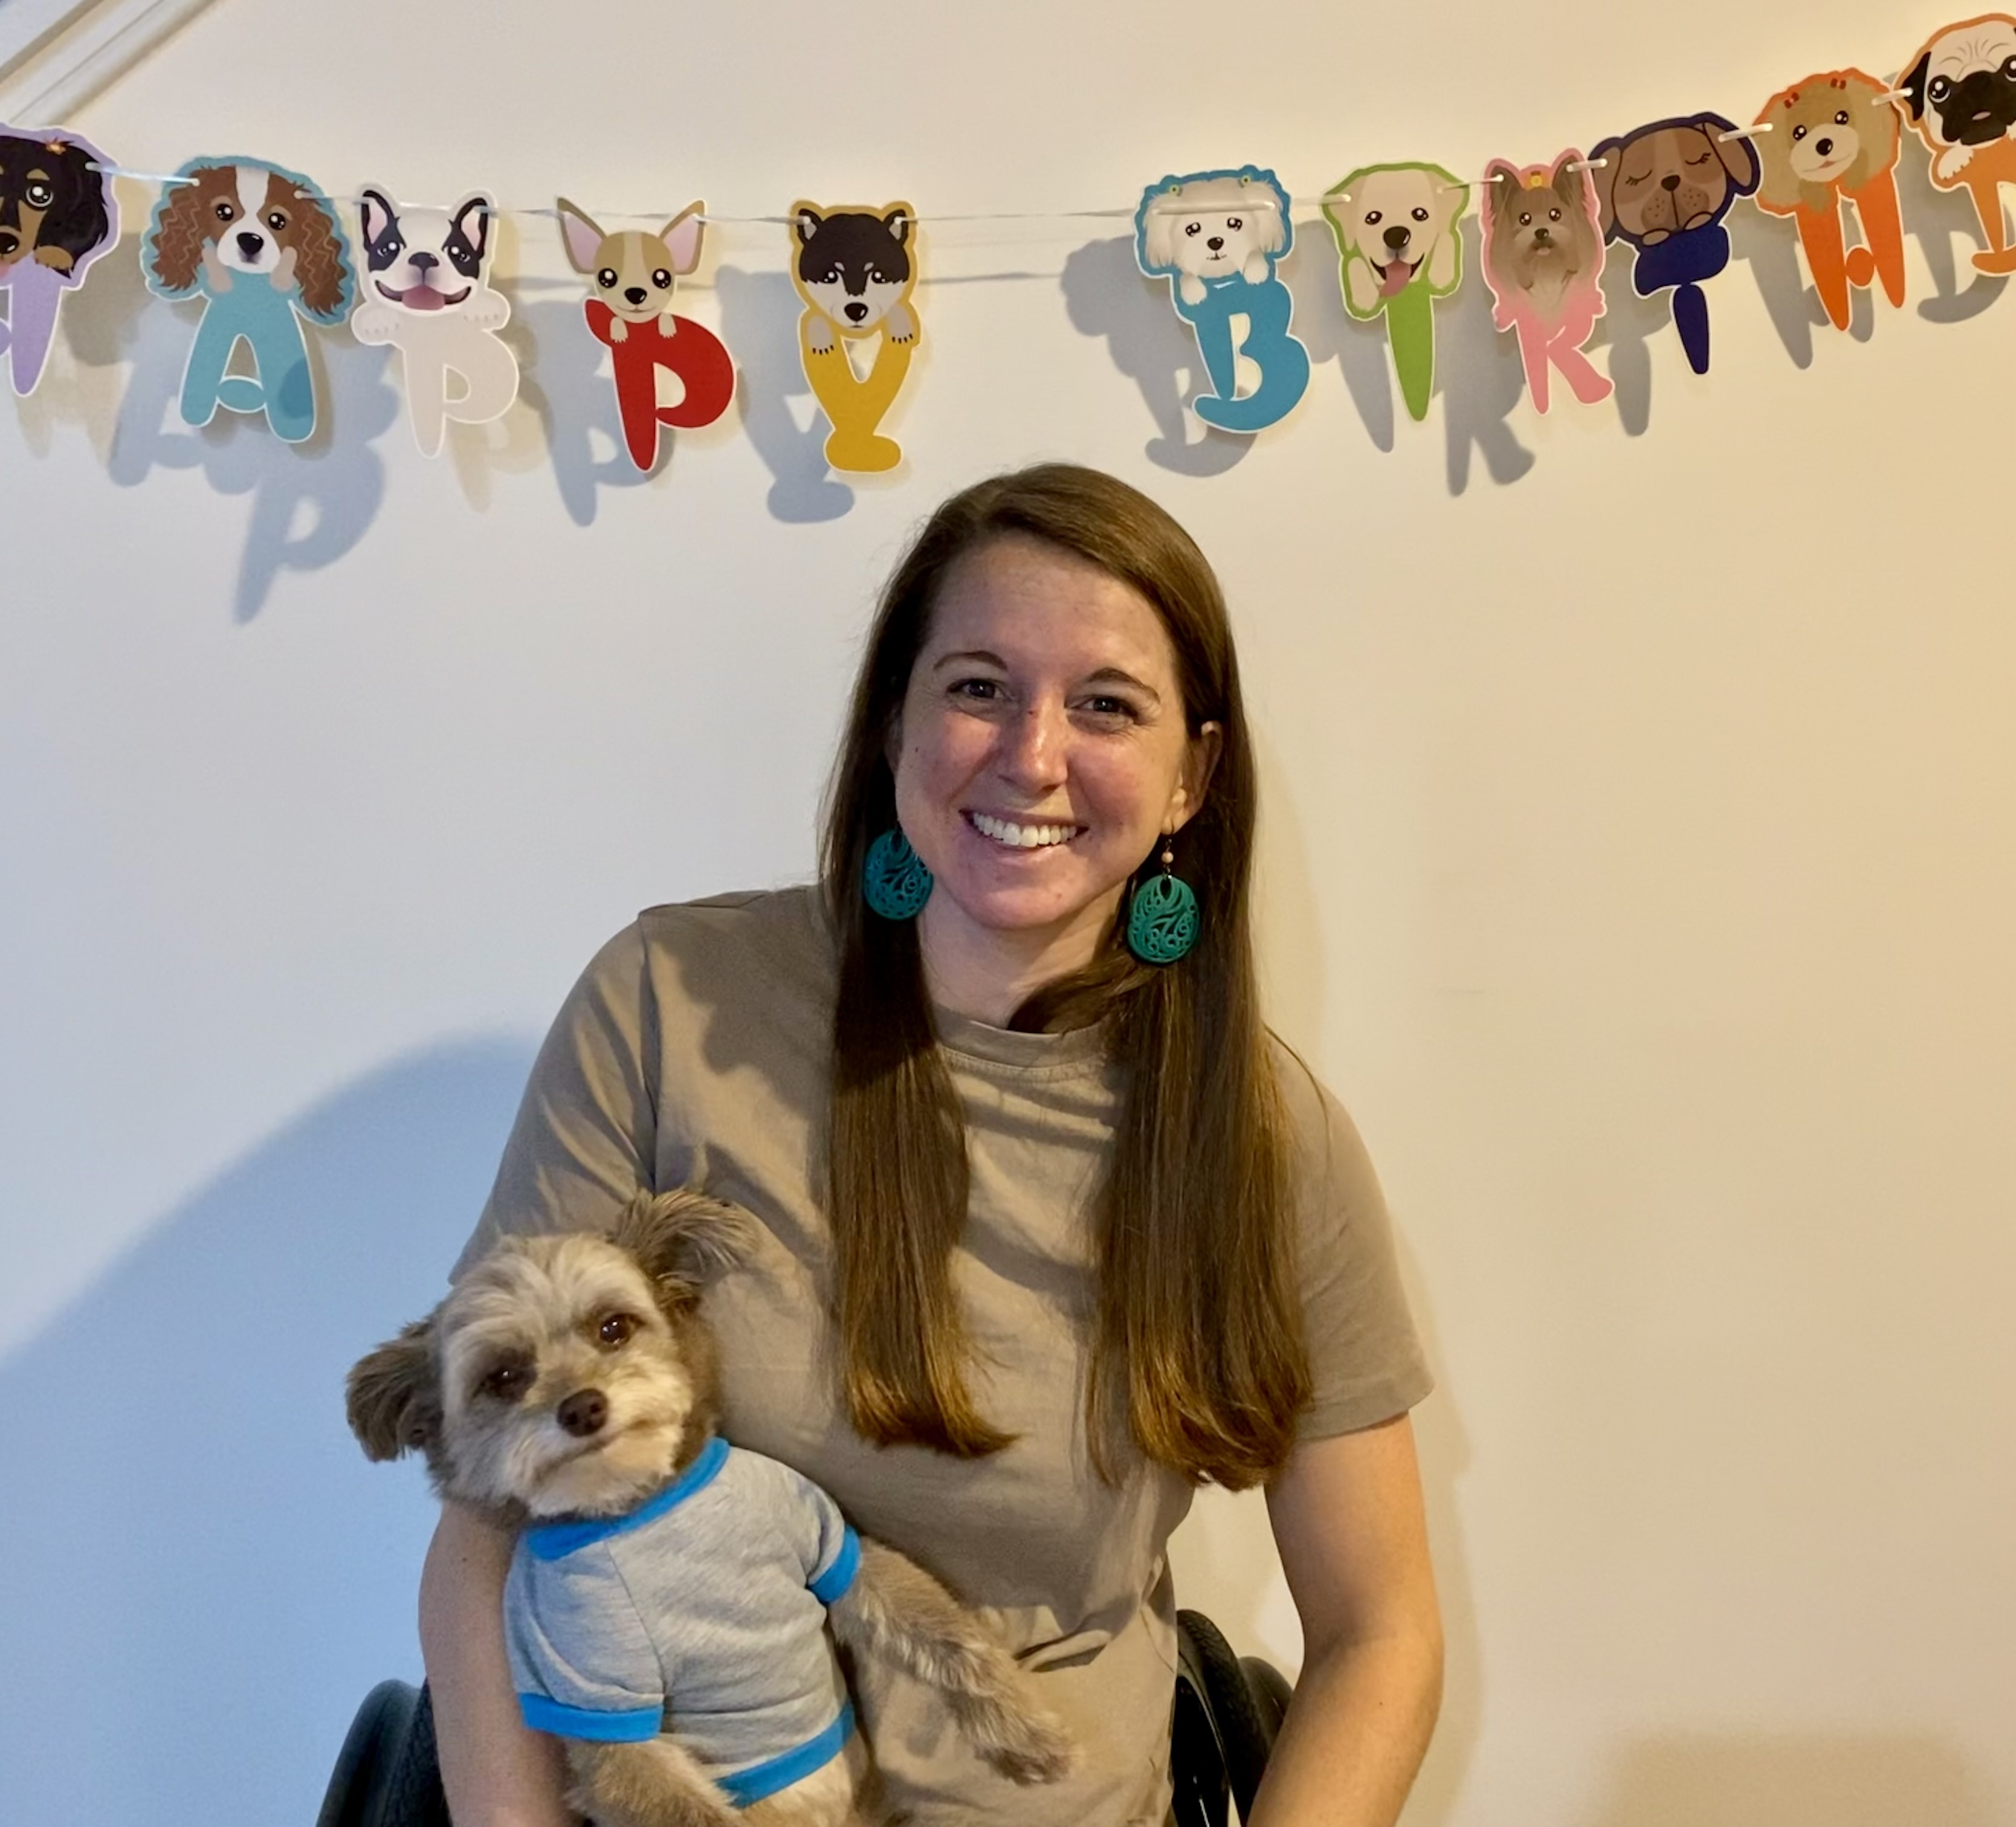 Kristin holding her dog in front of a happy birthday sign